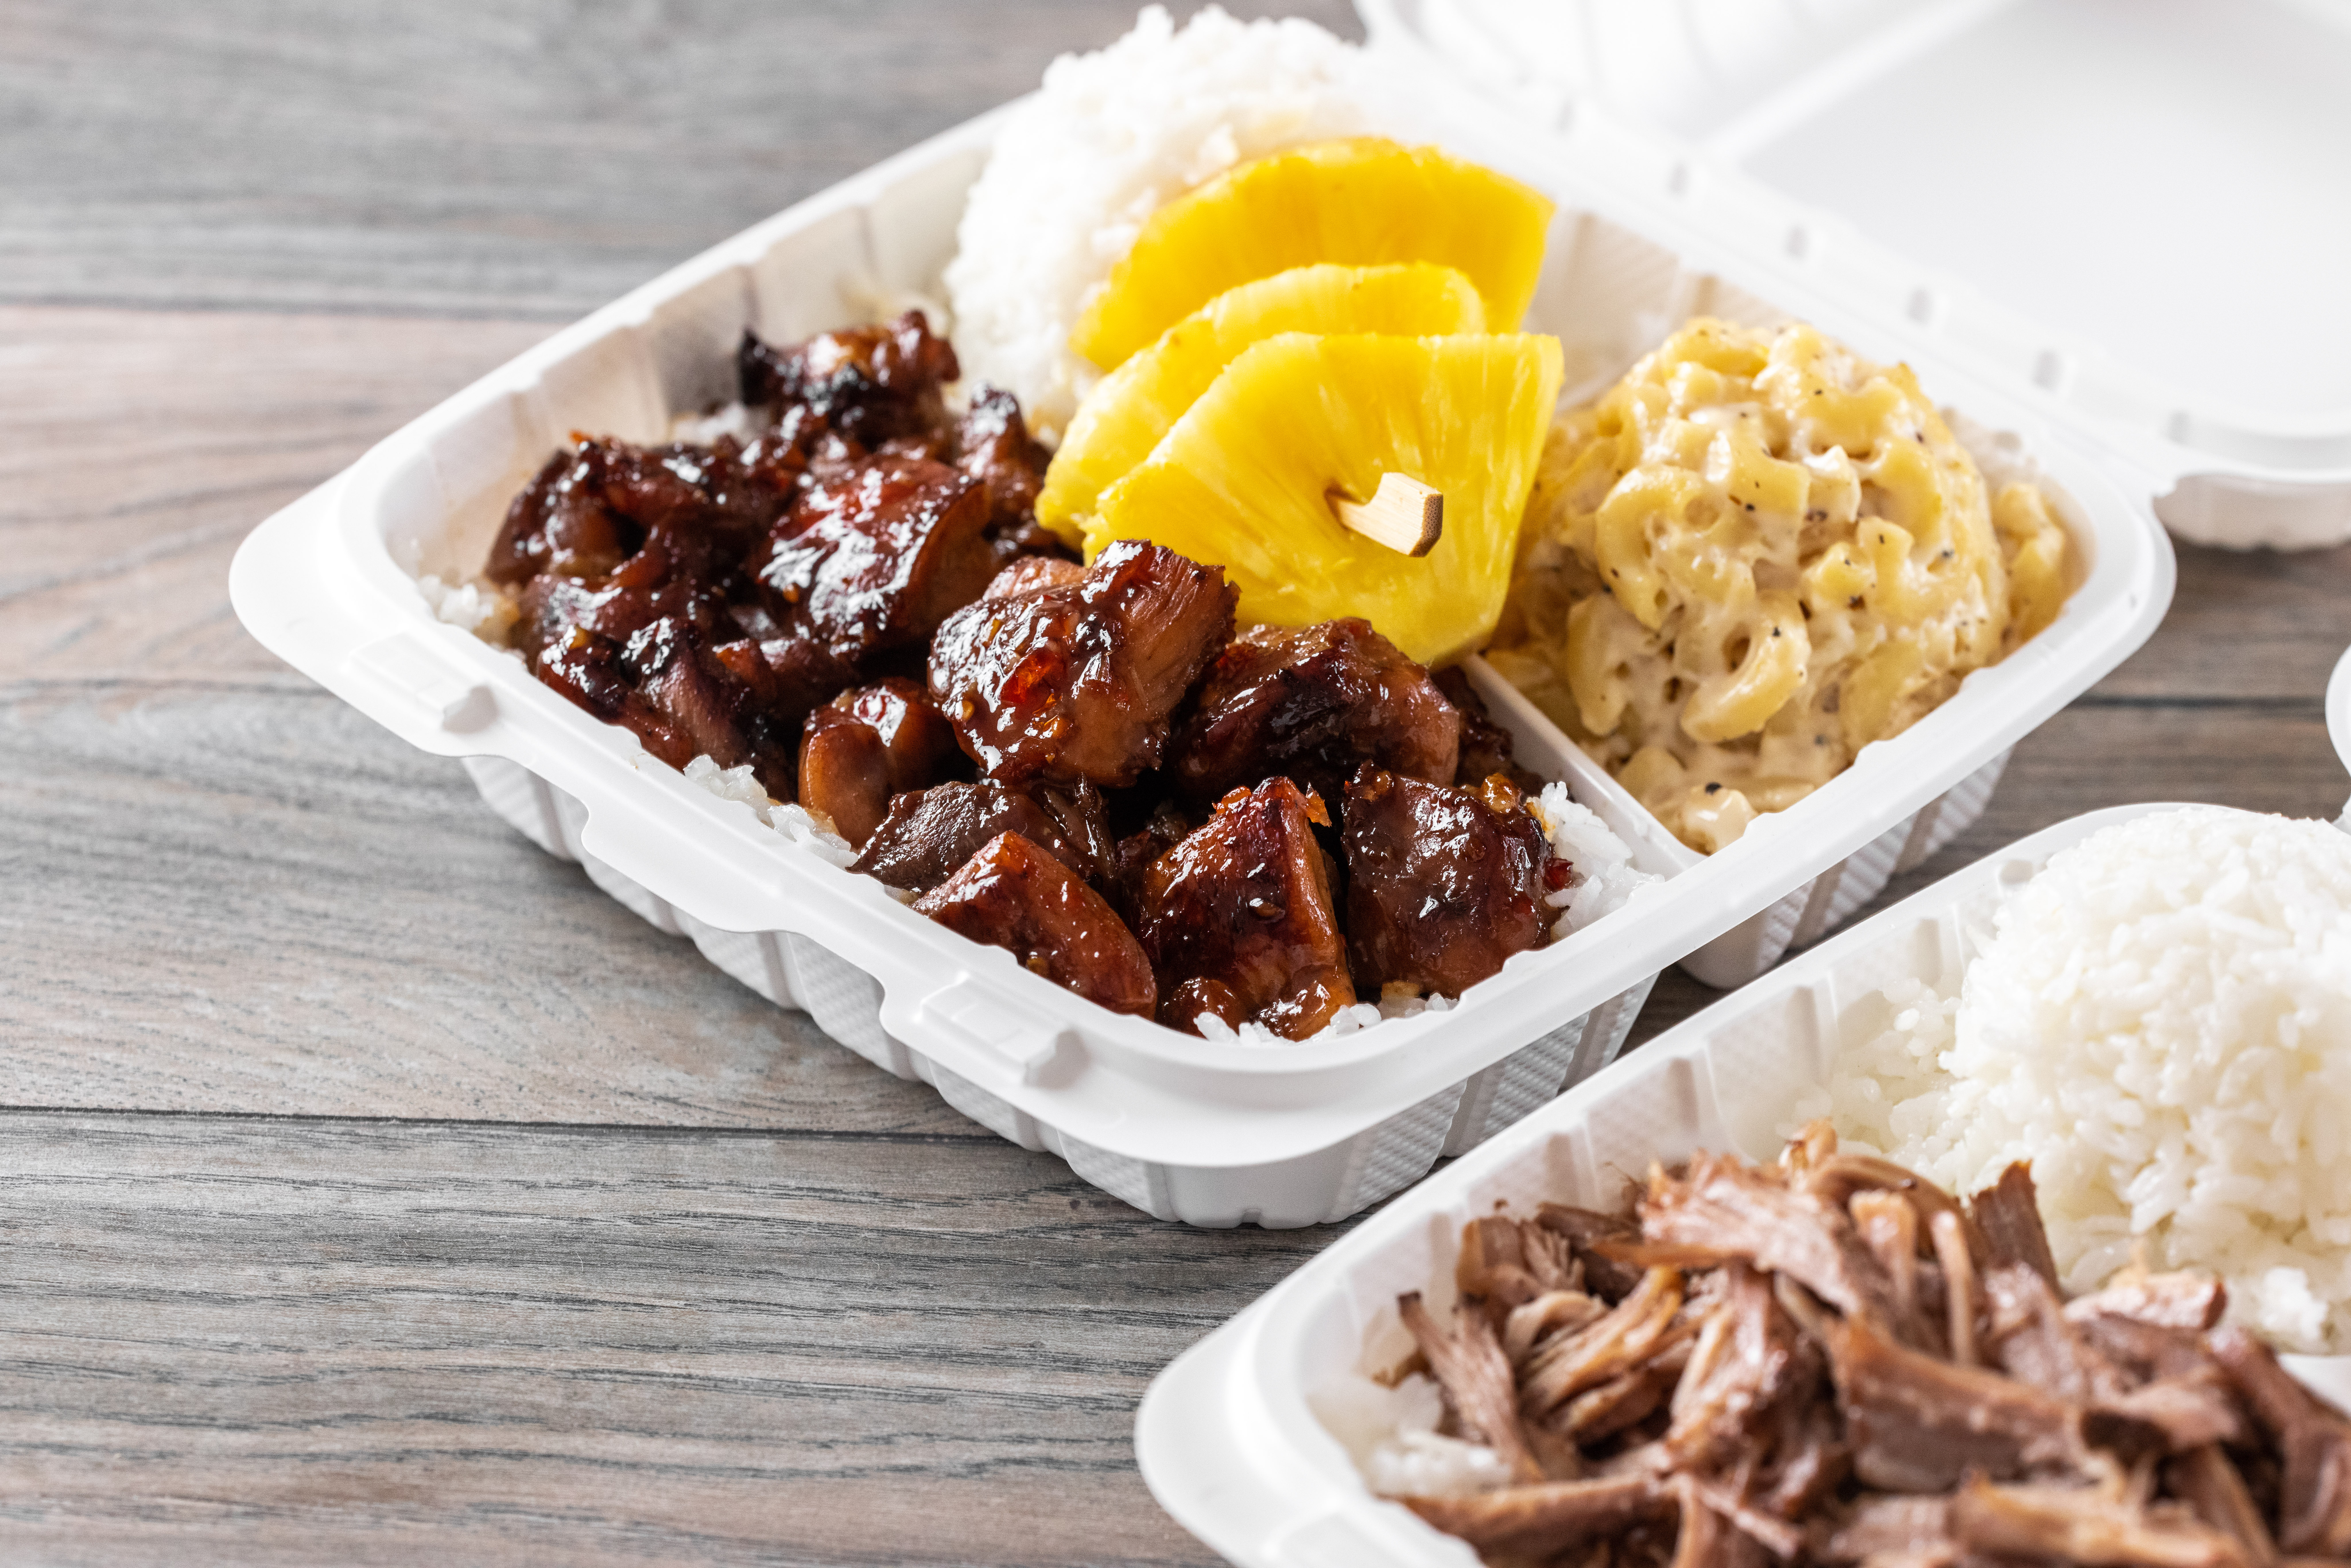 A takeout container filled with chicken coated in brown sauce, rice, macaroni salad and garnished with wedges of pineapple